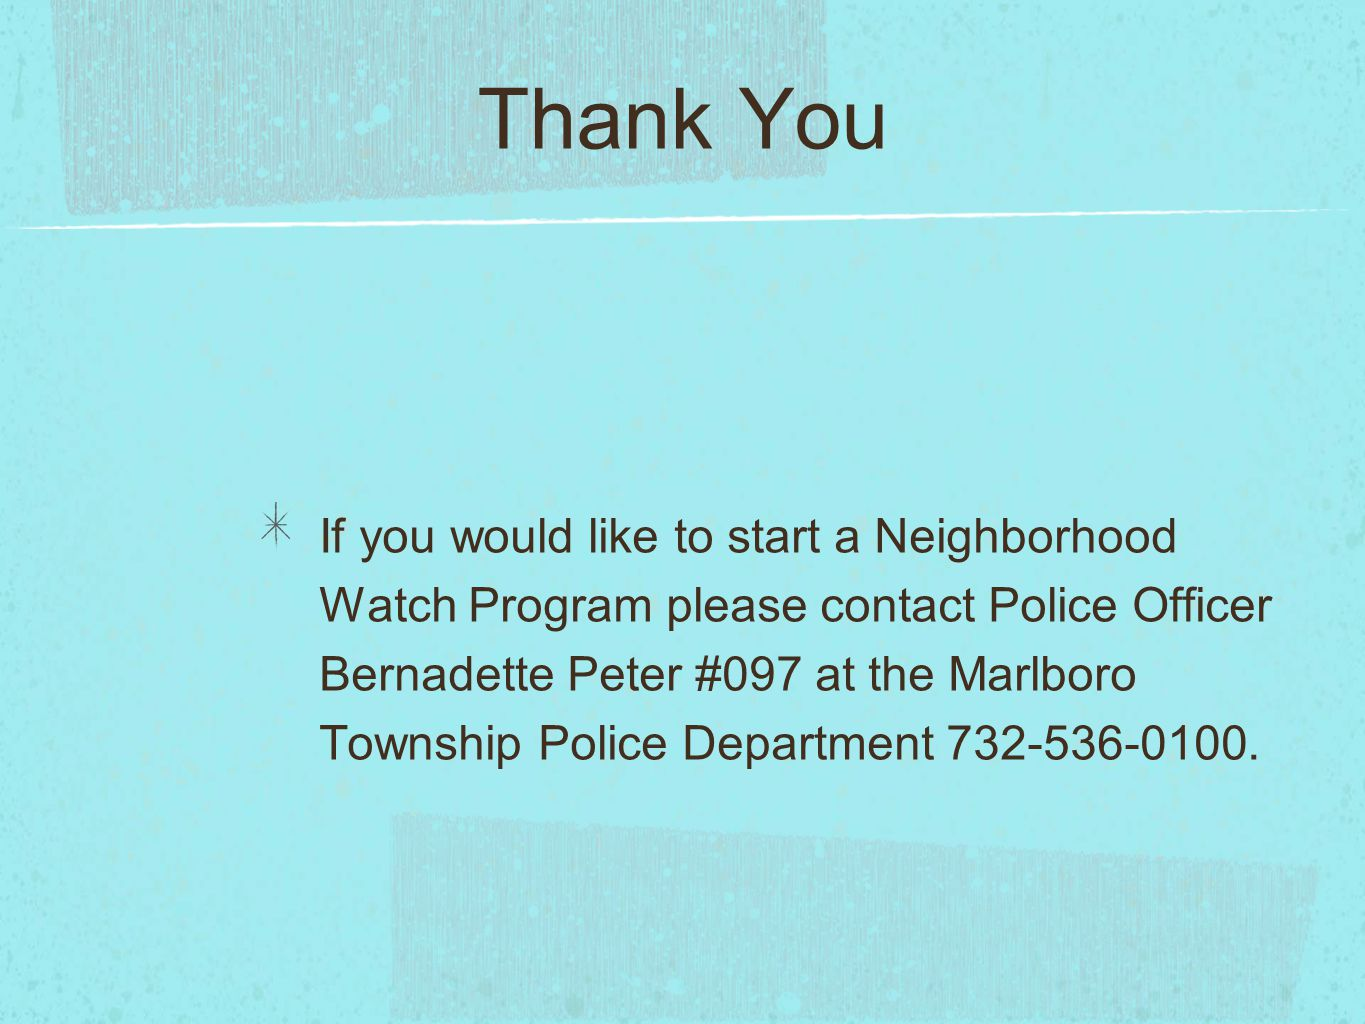 Thank You If you would like to start a Neighborhood Watch Program please contact Police Officer Bernadette Peter #097 at the Marlboro Township Police